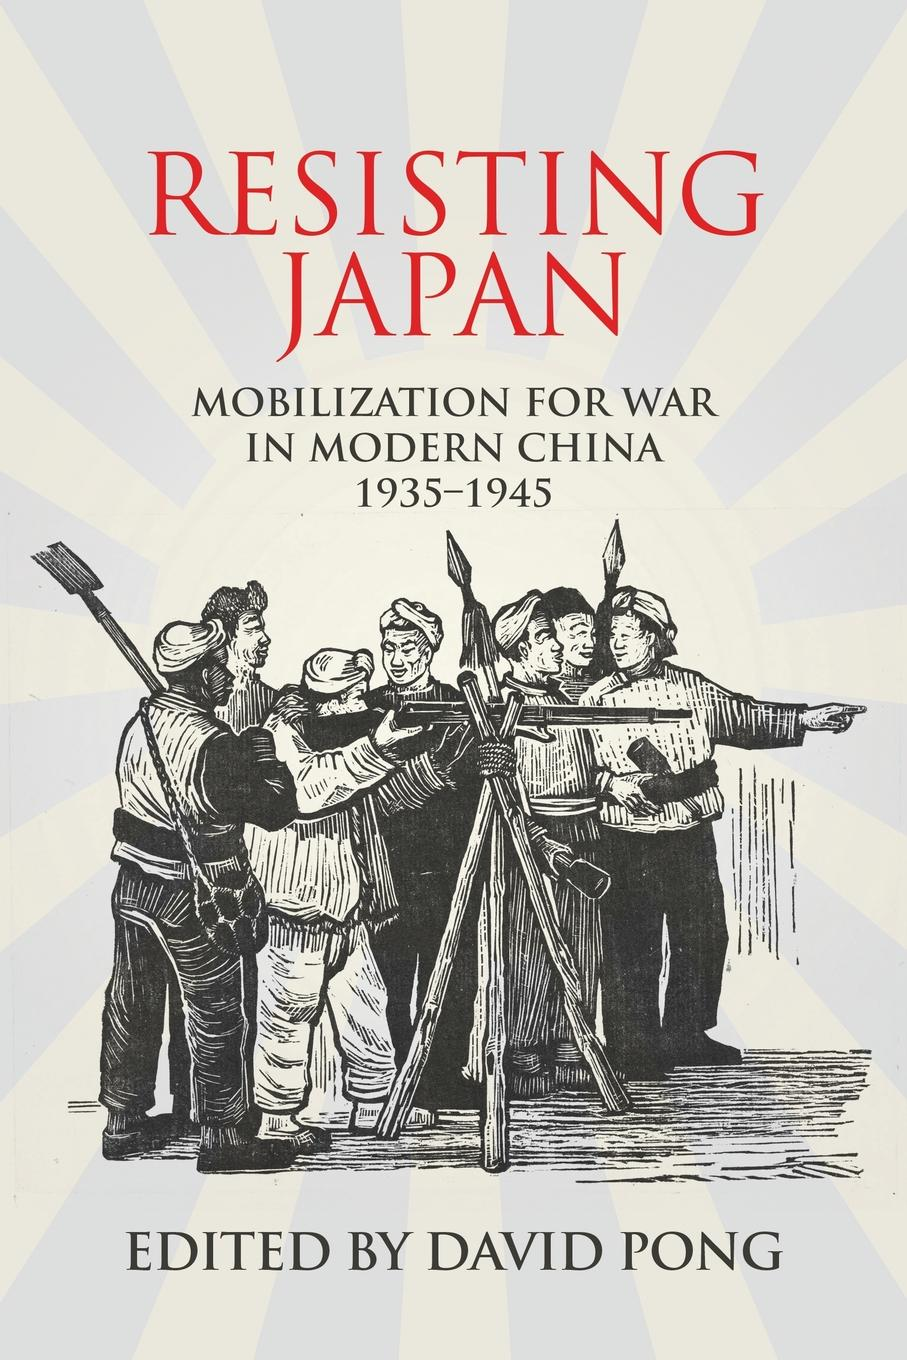 Resisting Japan. Mobilization for War in Modern China, 1935-1945 chinese ancient battles of the war the opium war one of the 2015 chinese ten book jane mijal khodorkovsky award winners